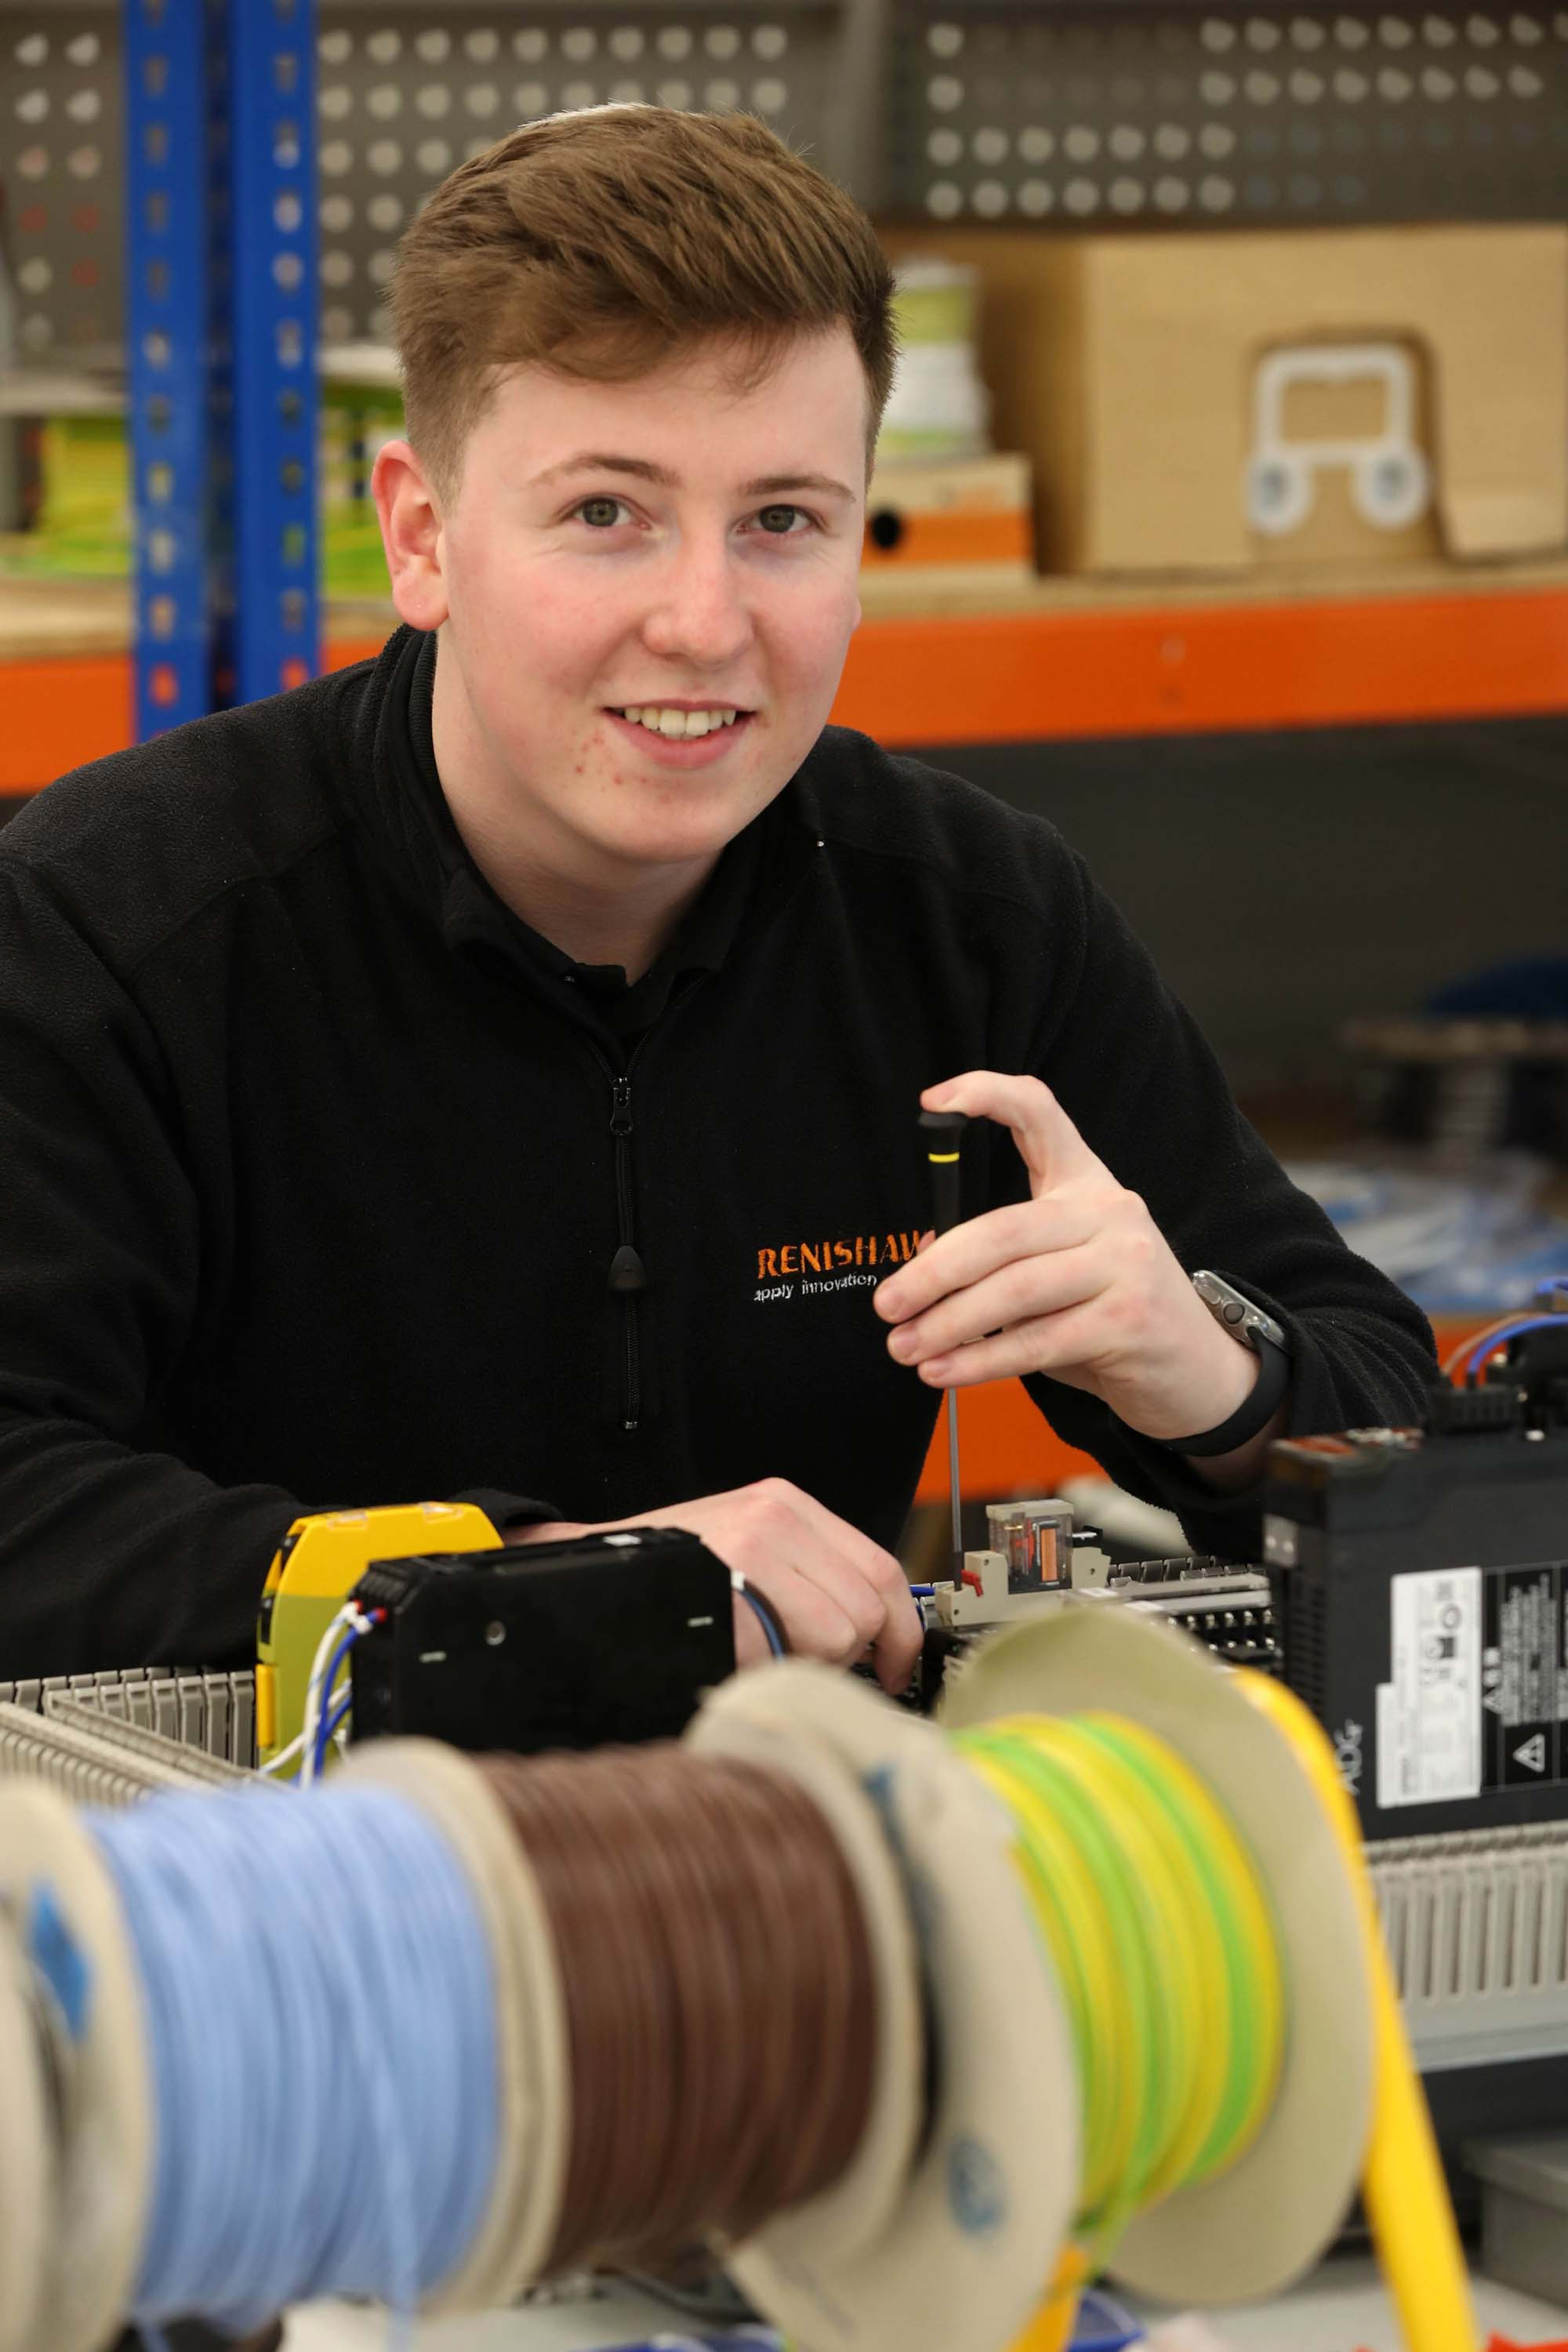 Renishaw_National_Apprenticeship_Award.jpg